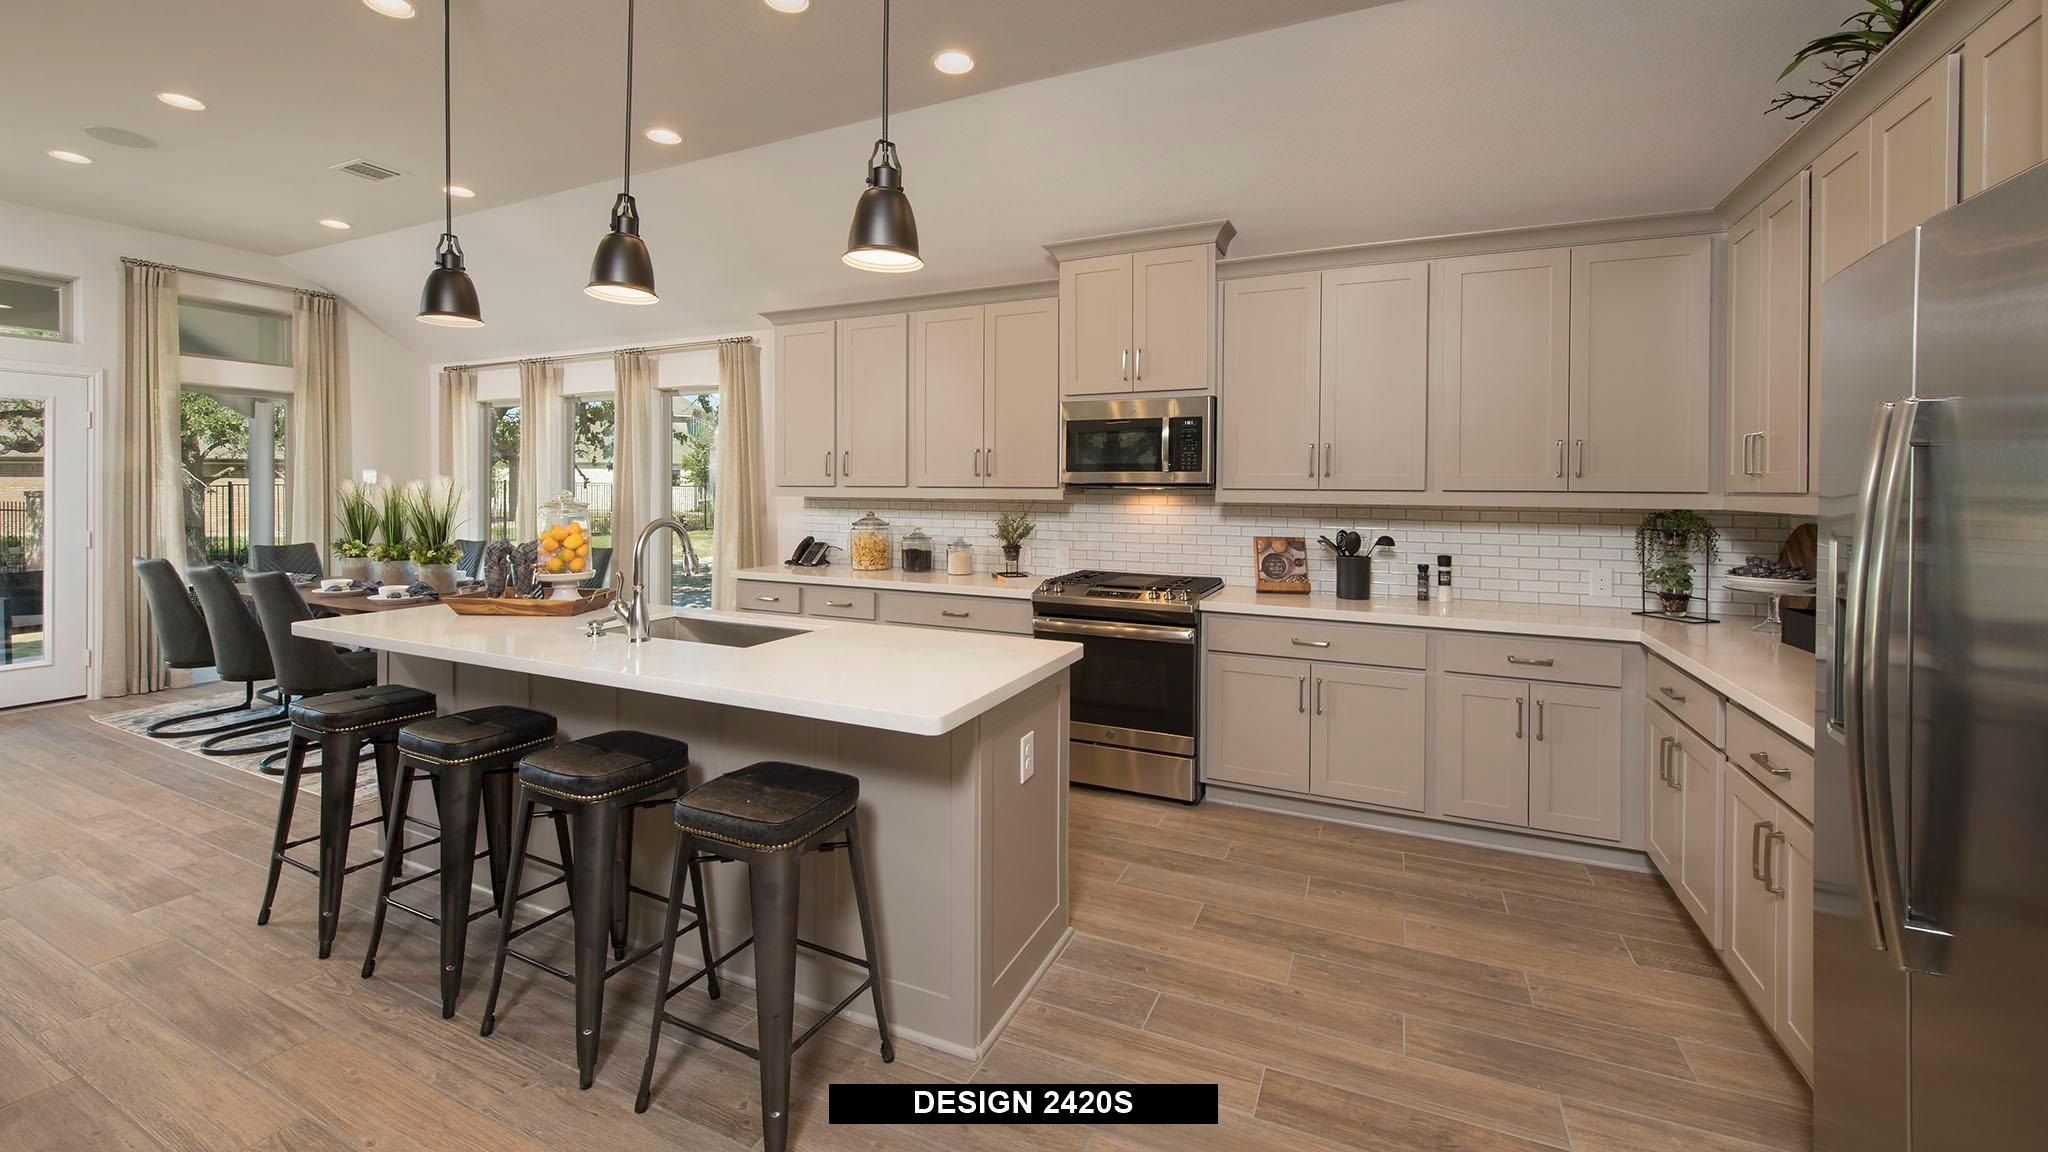 Kitchen featured in the 2420S By Perry Homes in San Antonio, TX